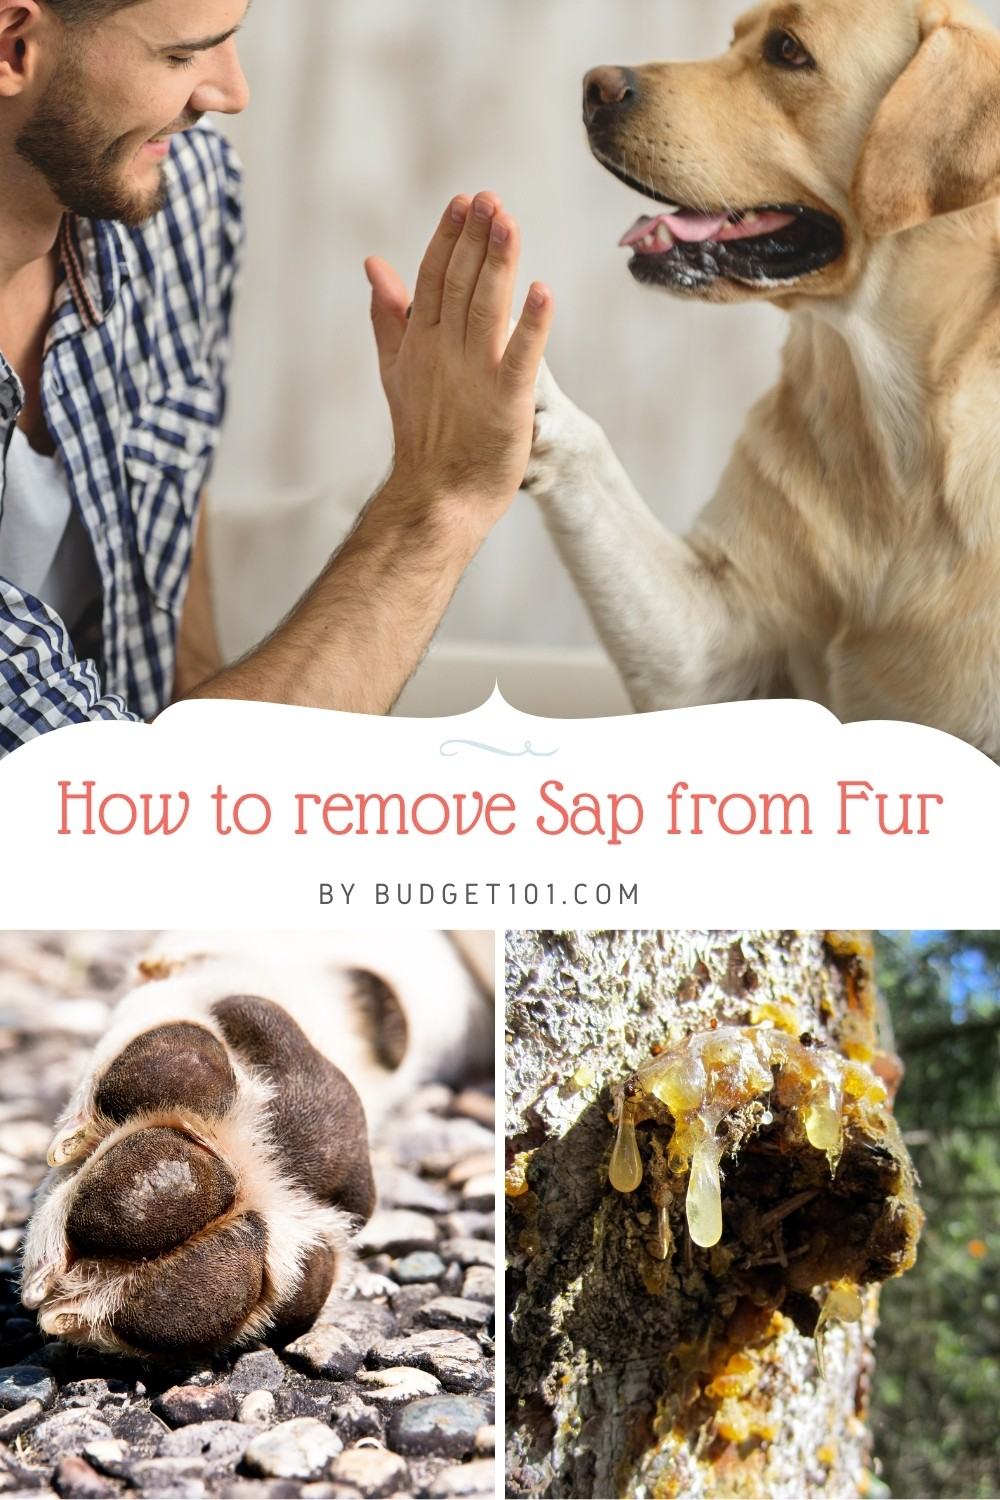 How to painlessly remove tree sap from pet fur and paws #pets #removesap #Budget101 #tipsntricks